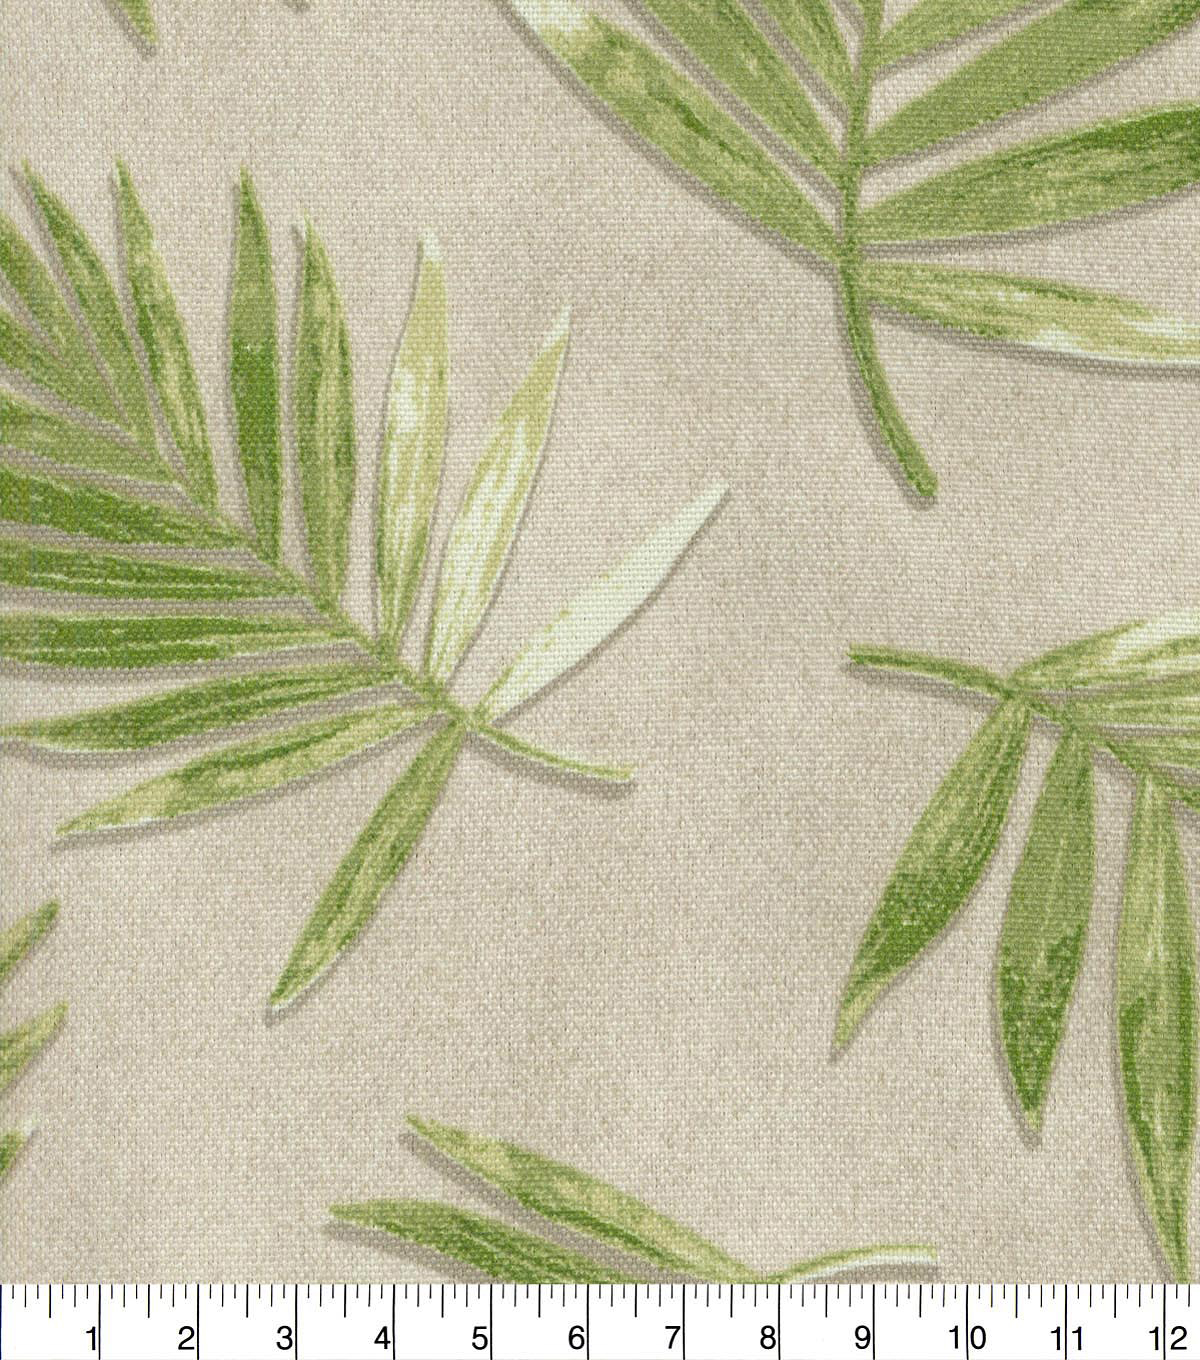 P/K Lifestyles Home Decor 8\u0022x8\u0022 Swatch-Fossil Fronds Leaf